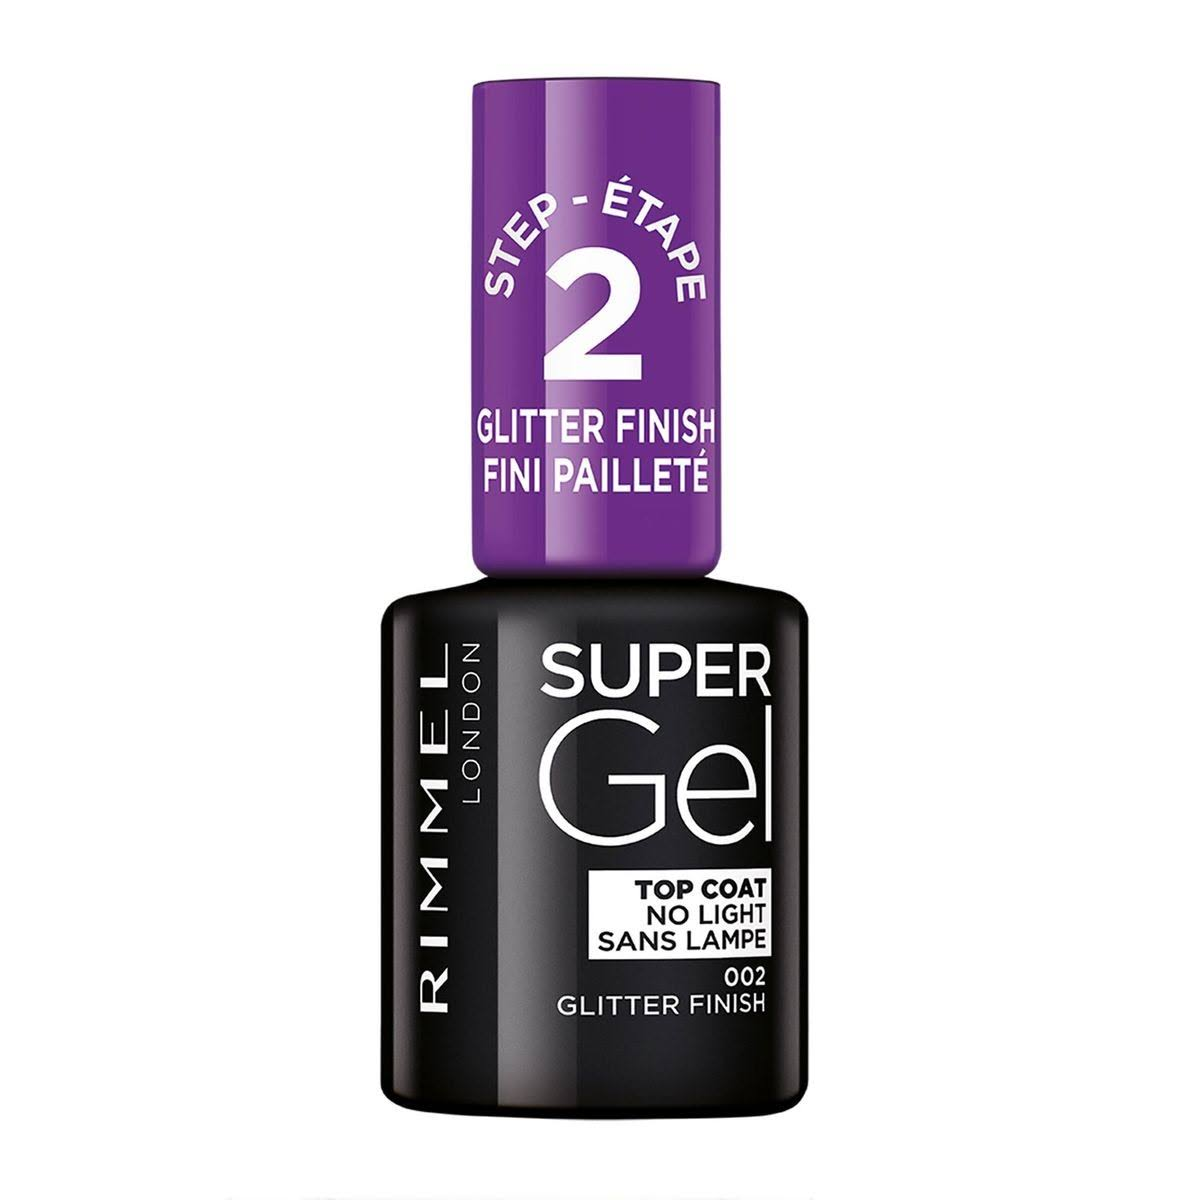 Rimmel Super Gel Top Coat Nail Polish Glitter